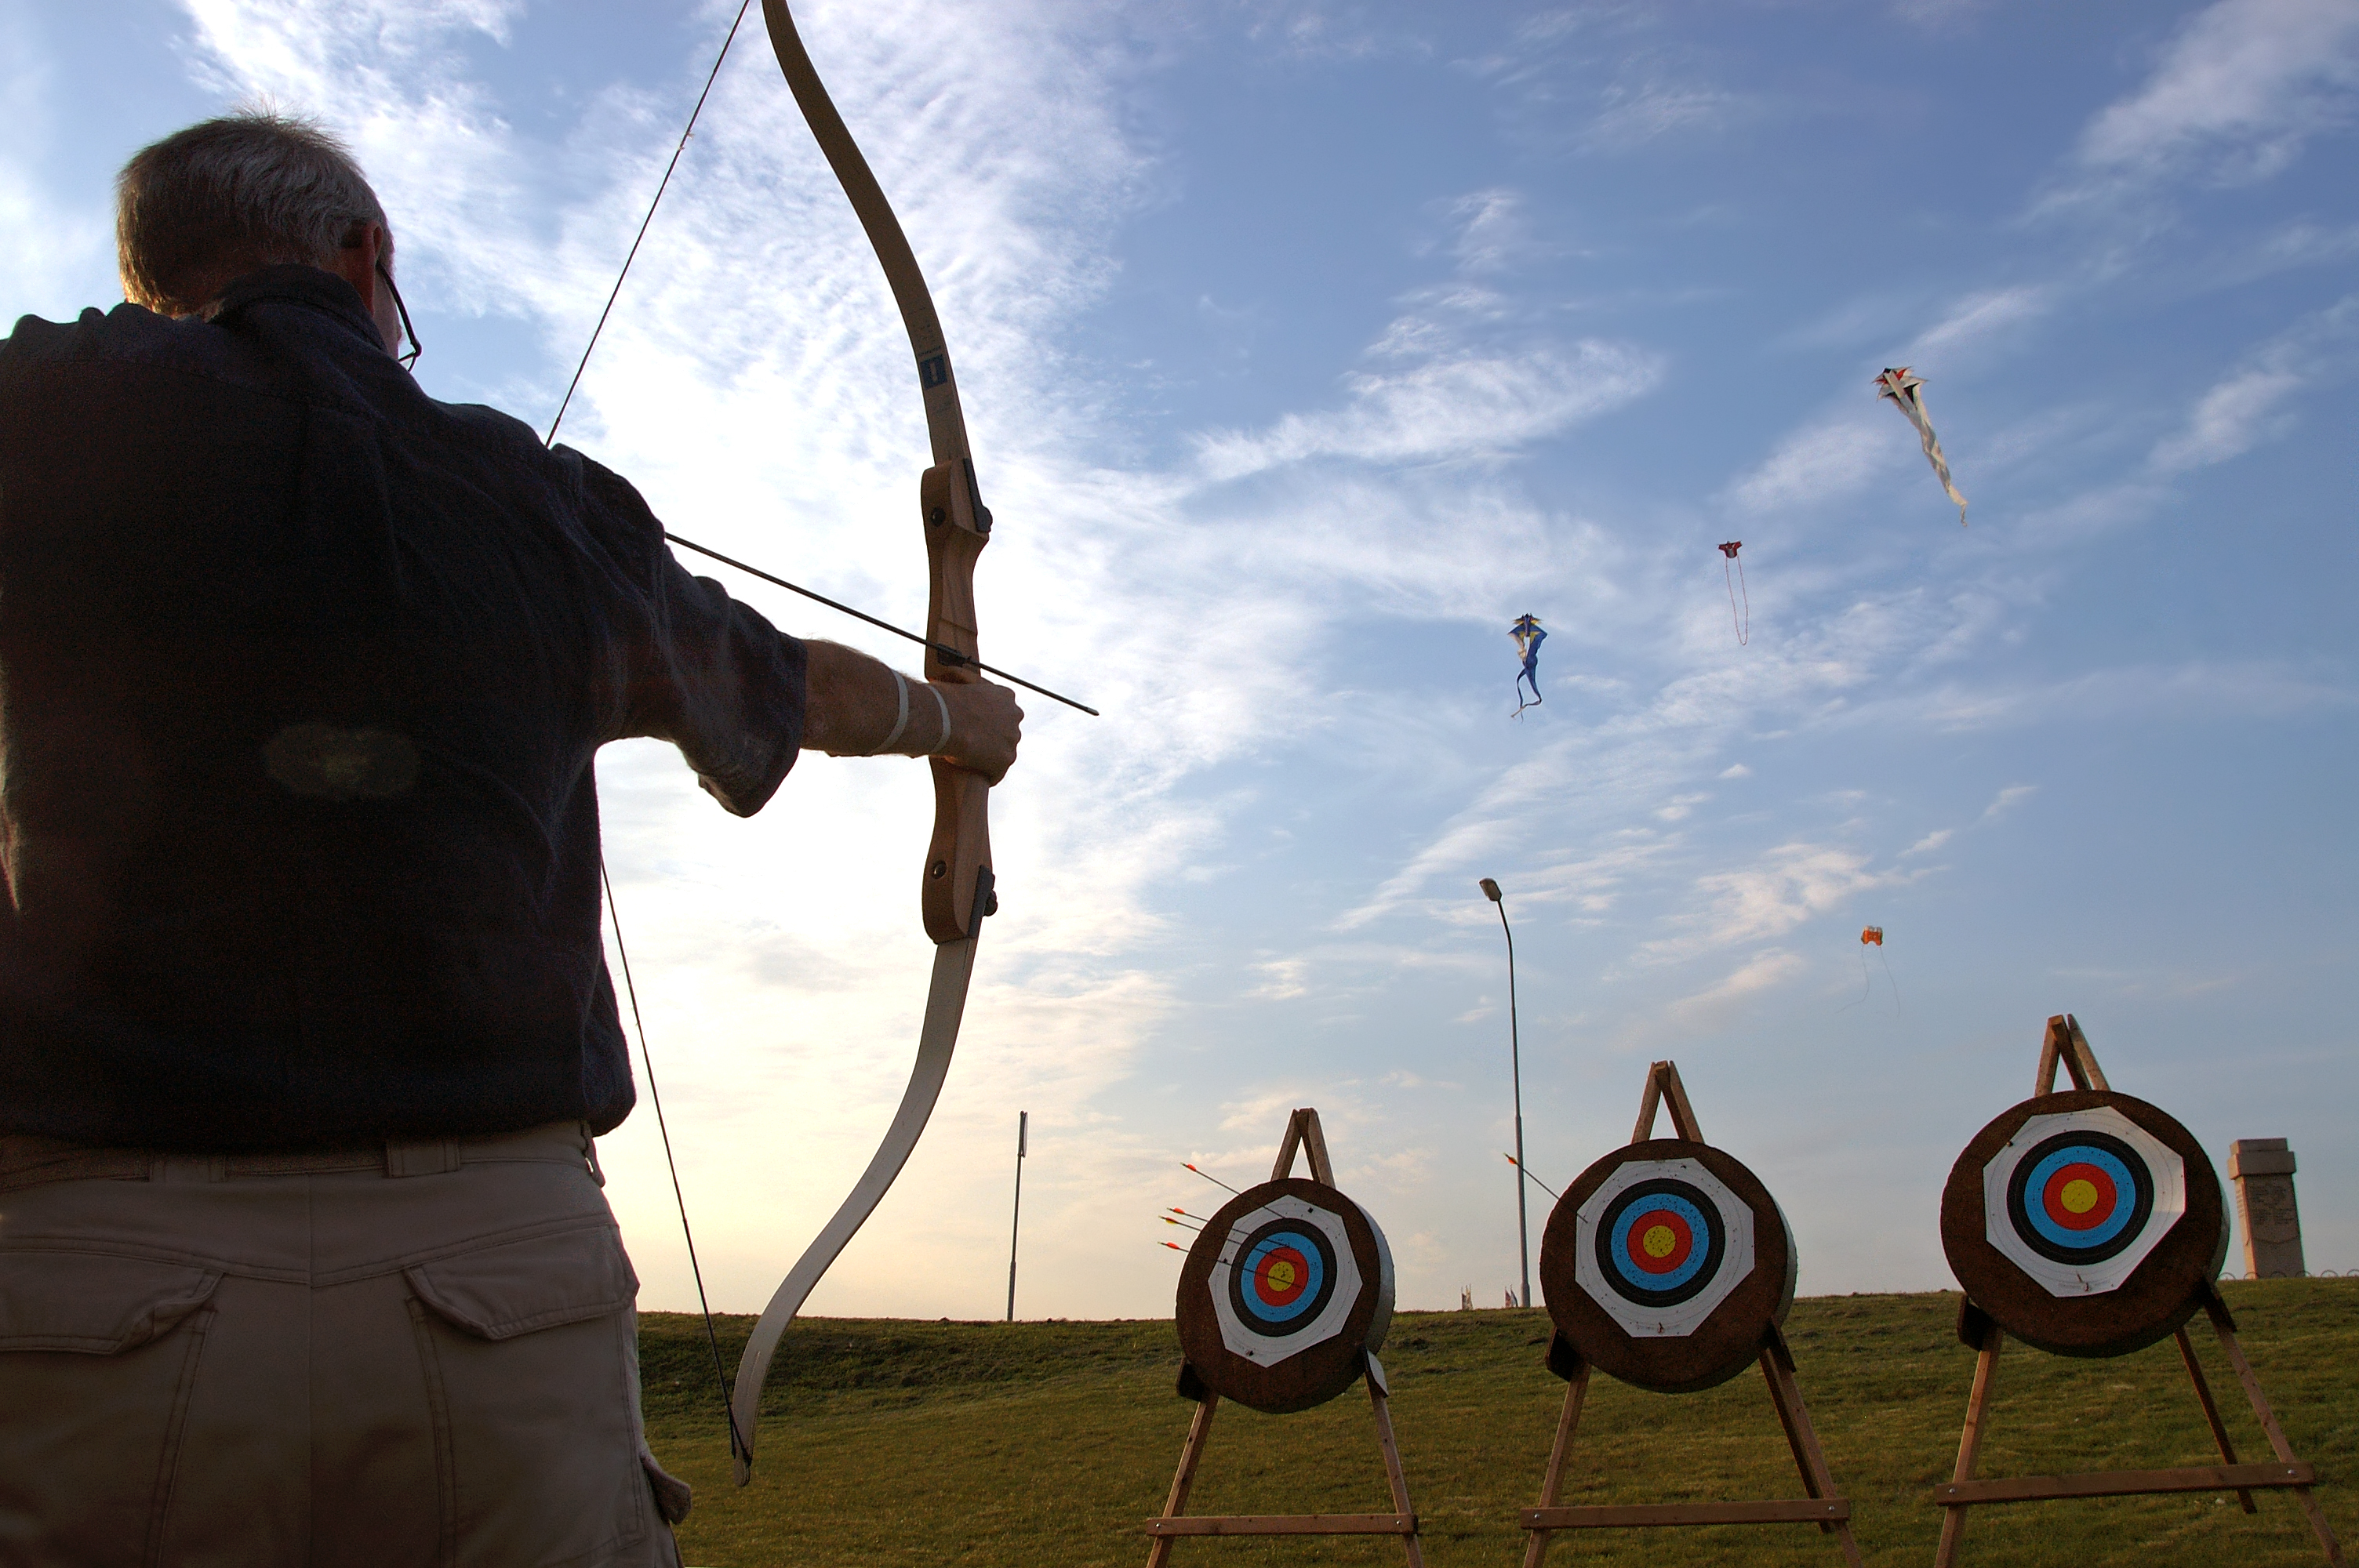 Quiver Financial archer aiming at targets